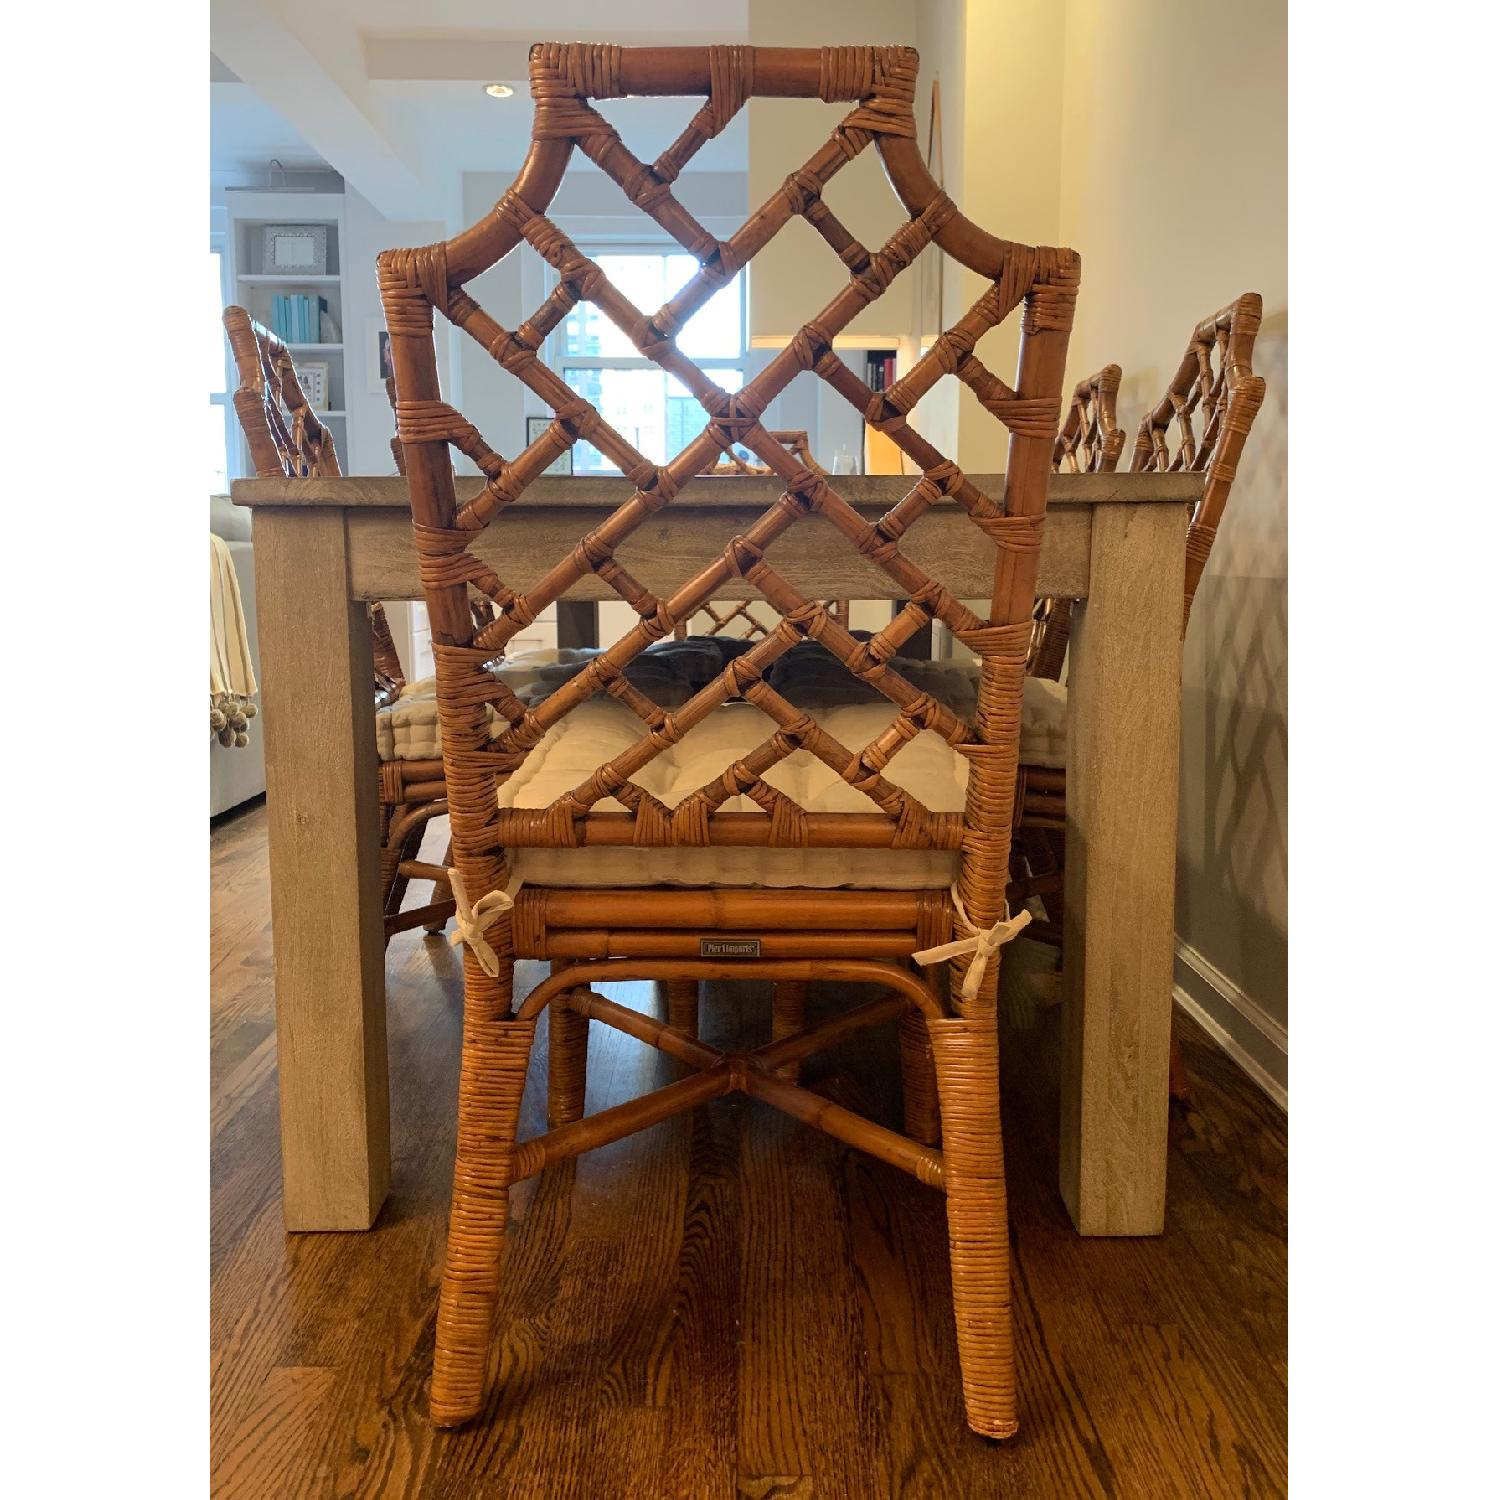 Pier 1 Rattan Dining Chairs - image-5